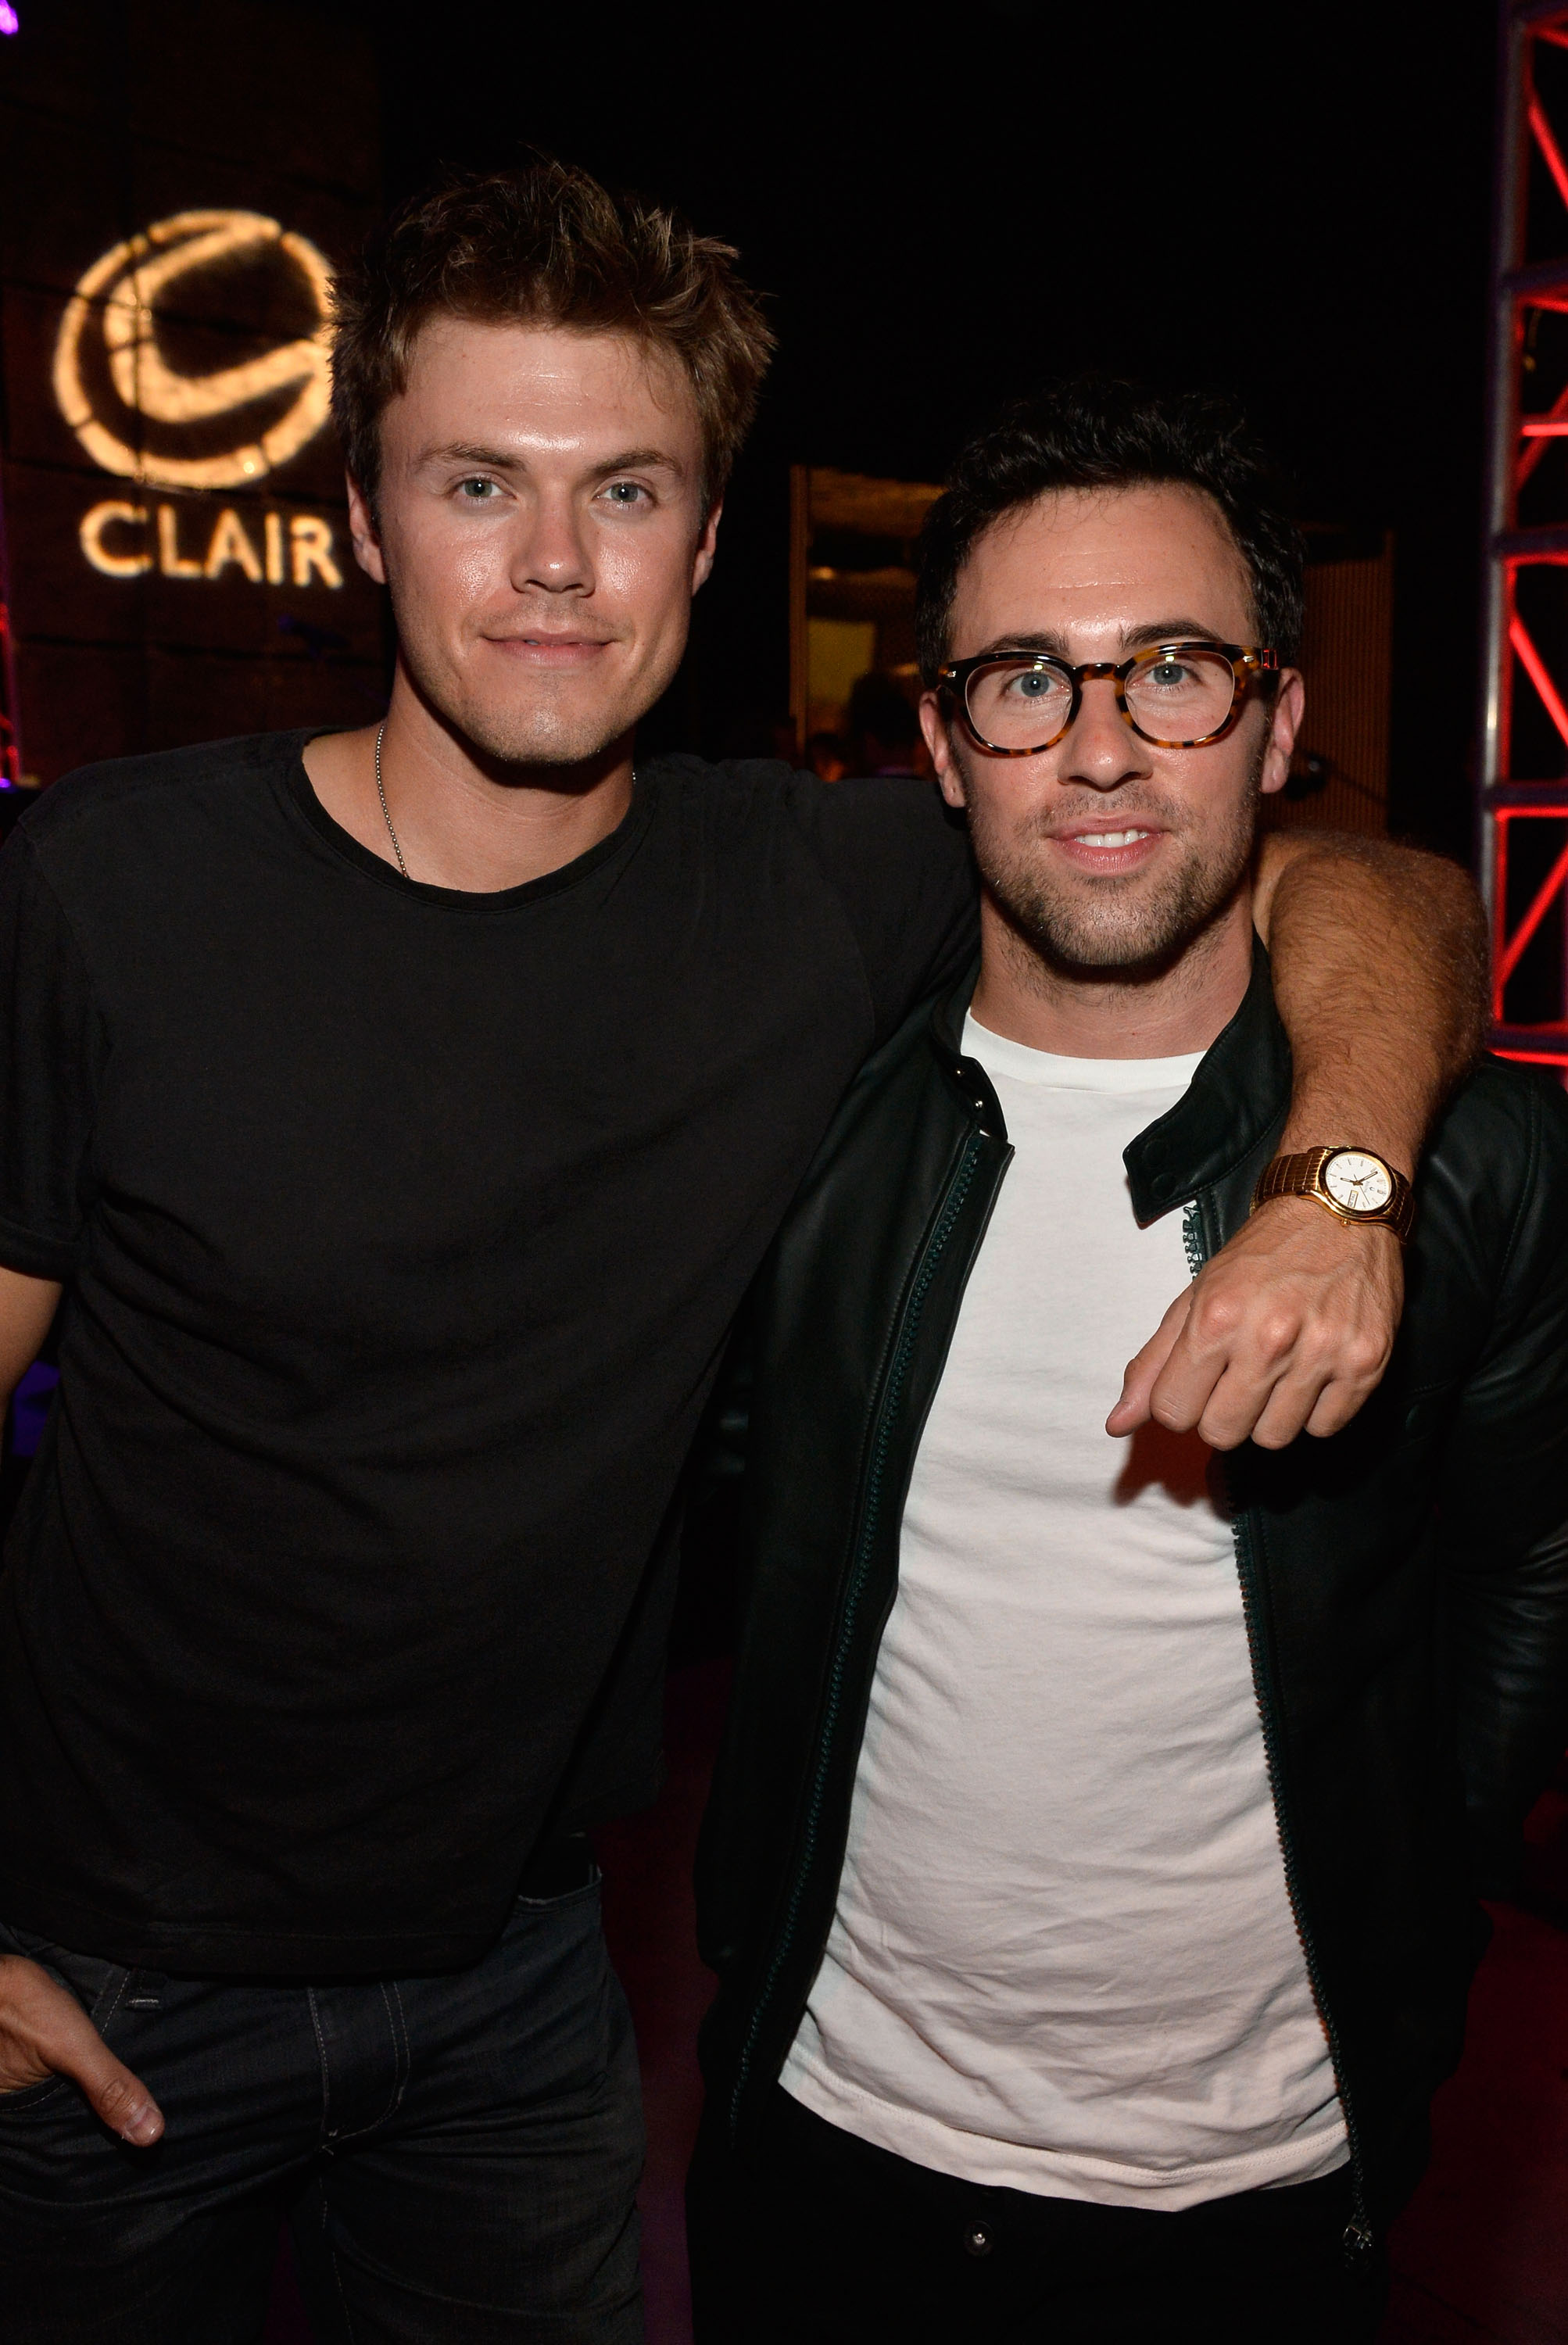 Actors Blake Cooper Griffin and Tim Rock attend Hudson Jeans Presents The Art of Elysium's Genesis Celebrating Emerging Artists at Siren Cube on September 20, 2013, in Los Angeles, California.